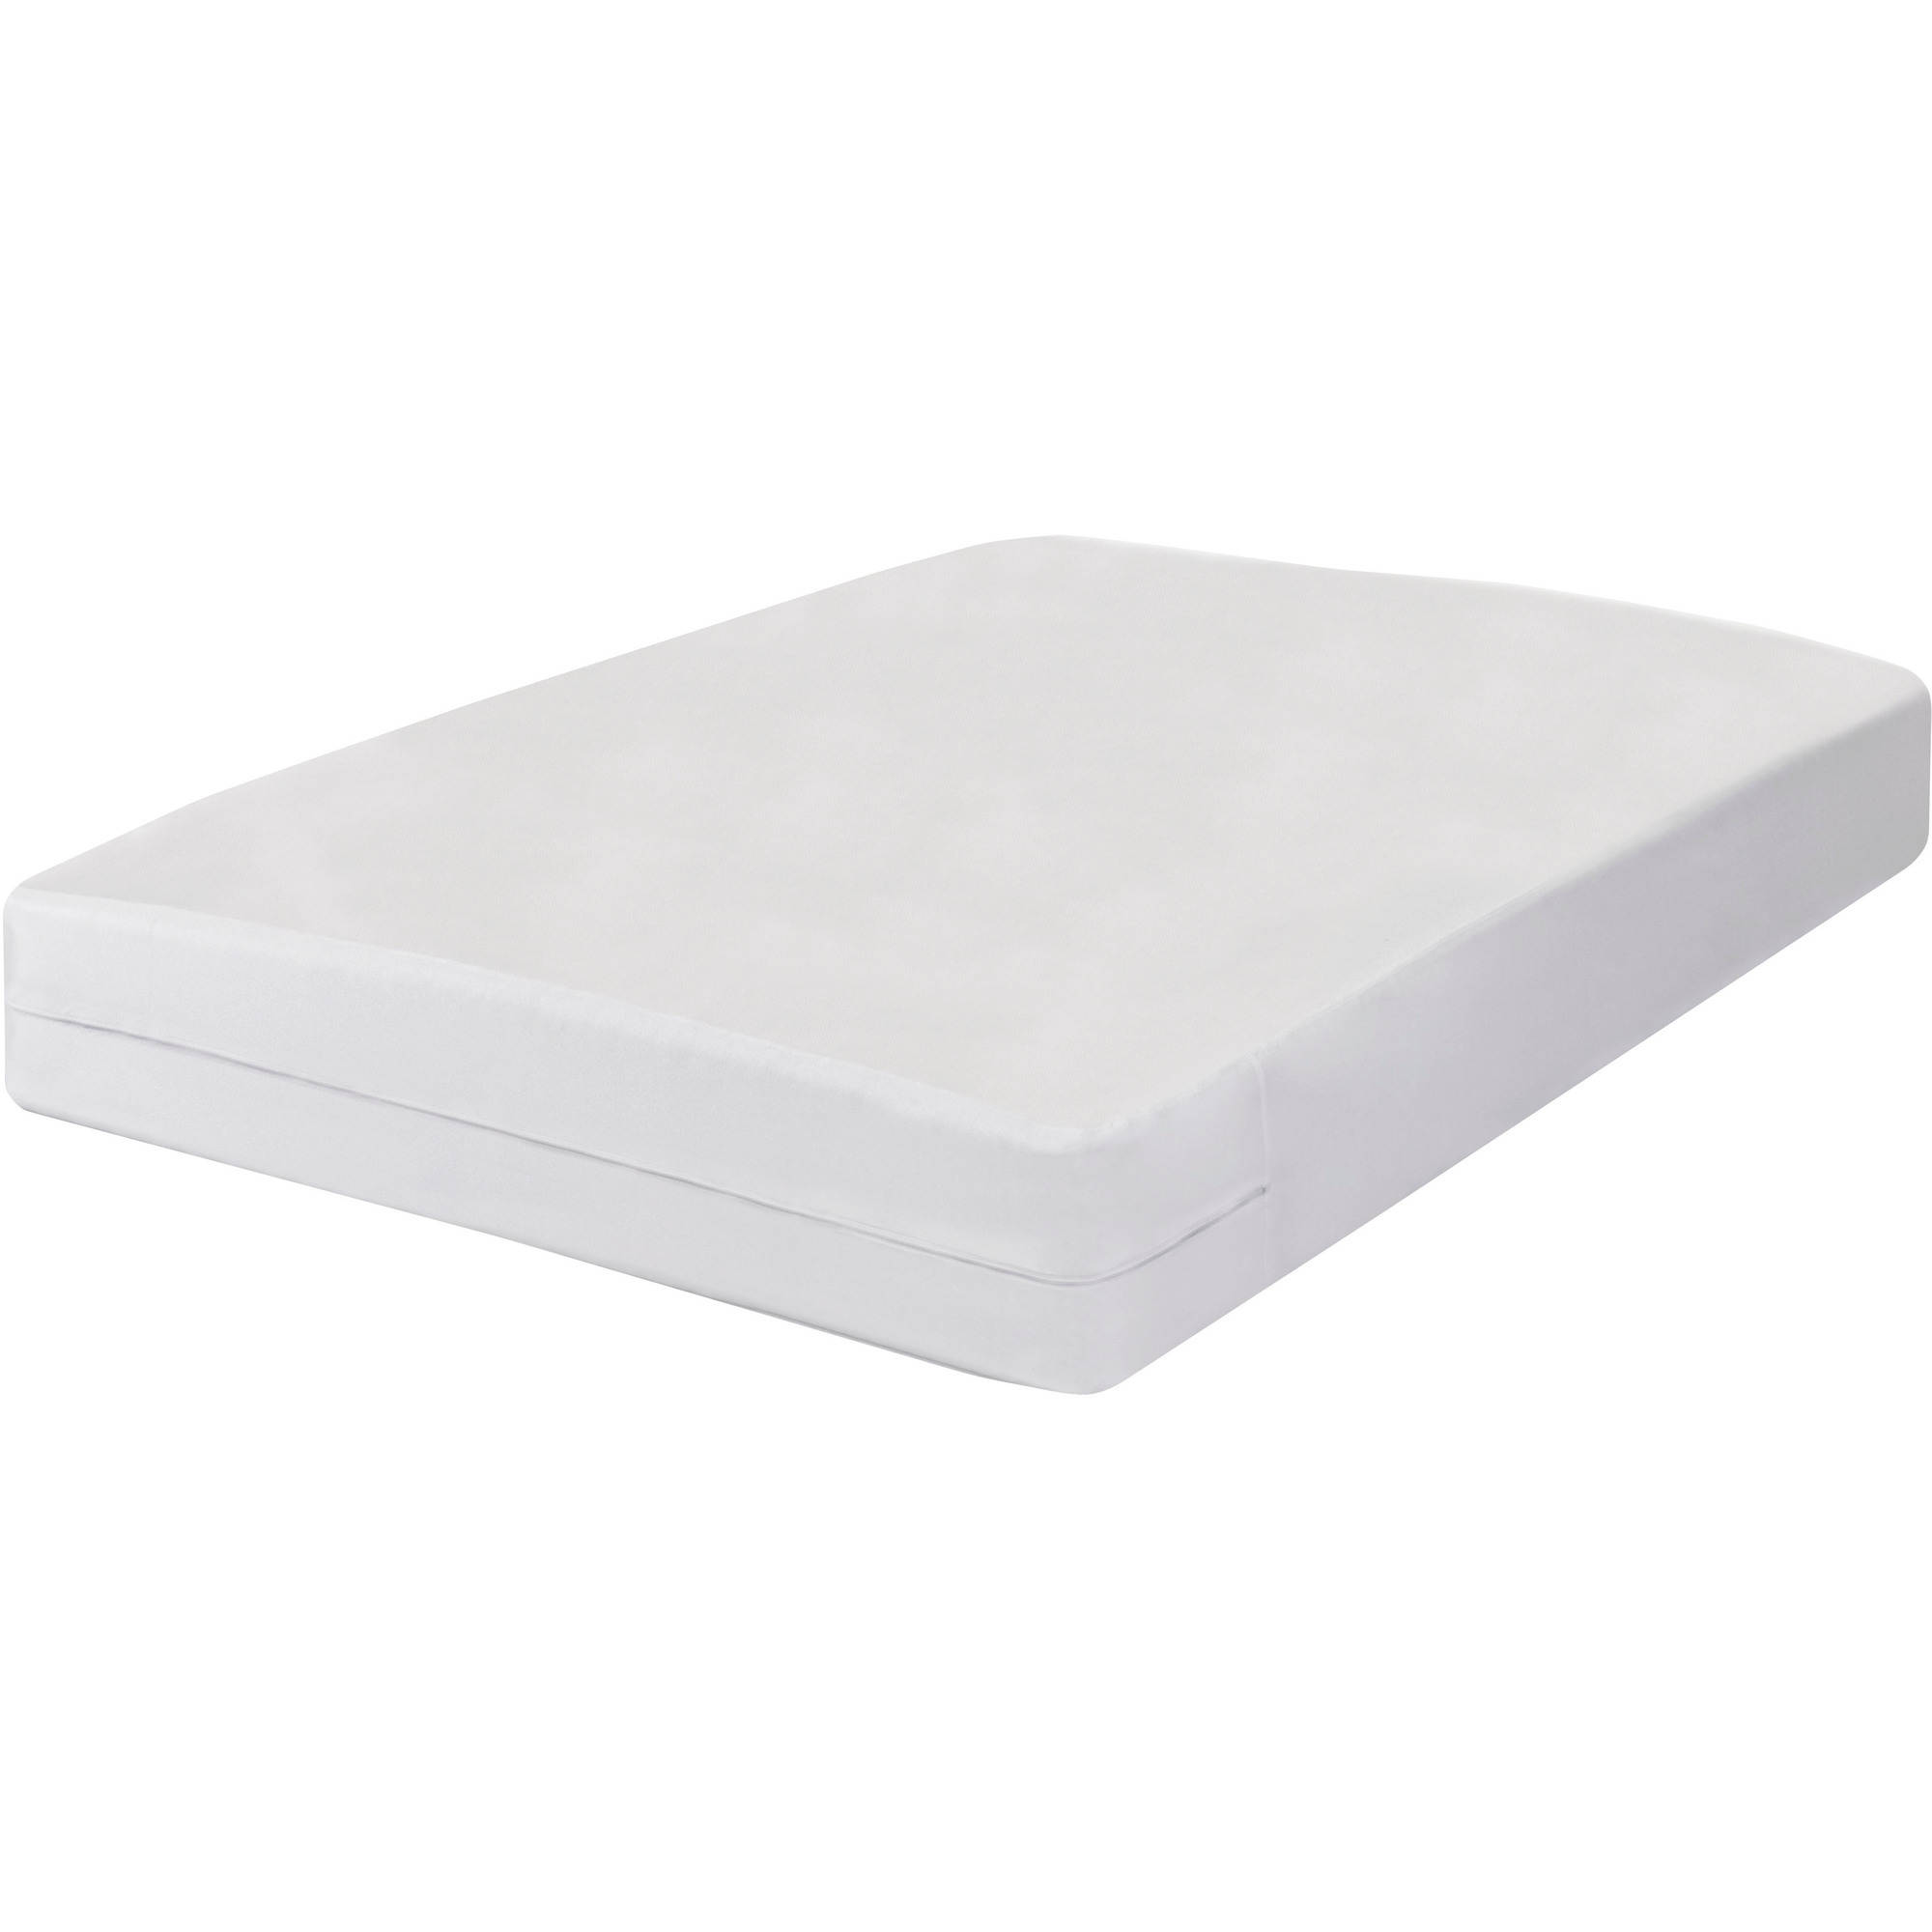 of plastic pillow top mattress the best full twin queen impressive bags idea cover king